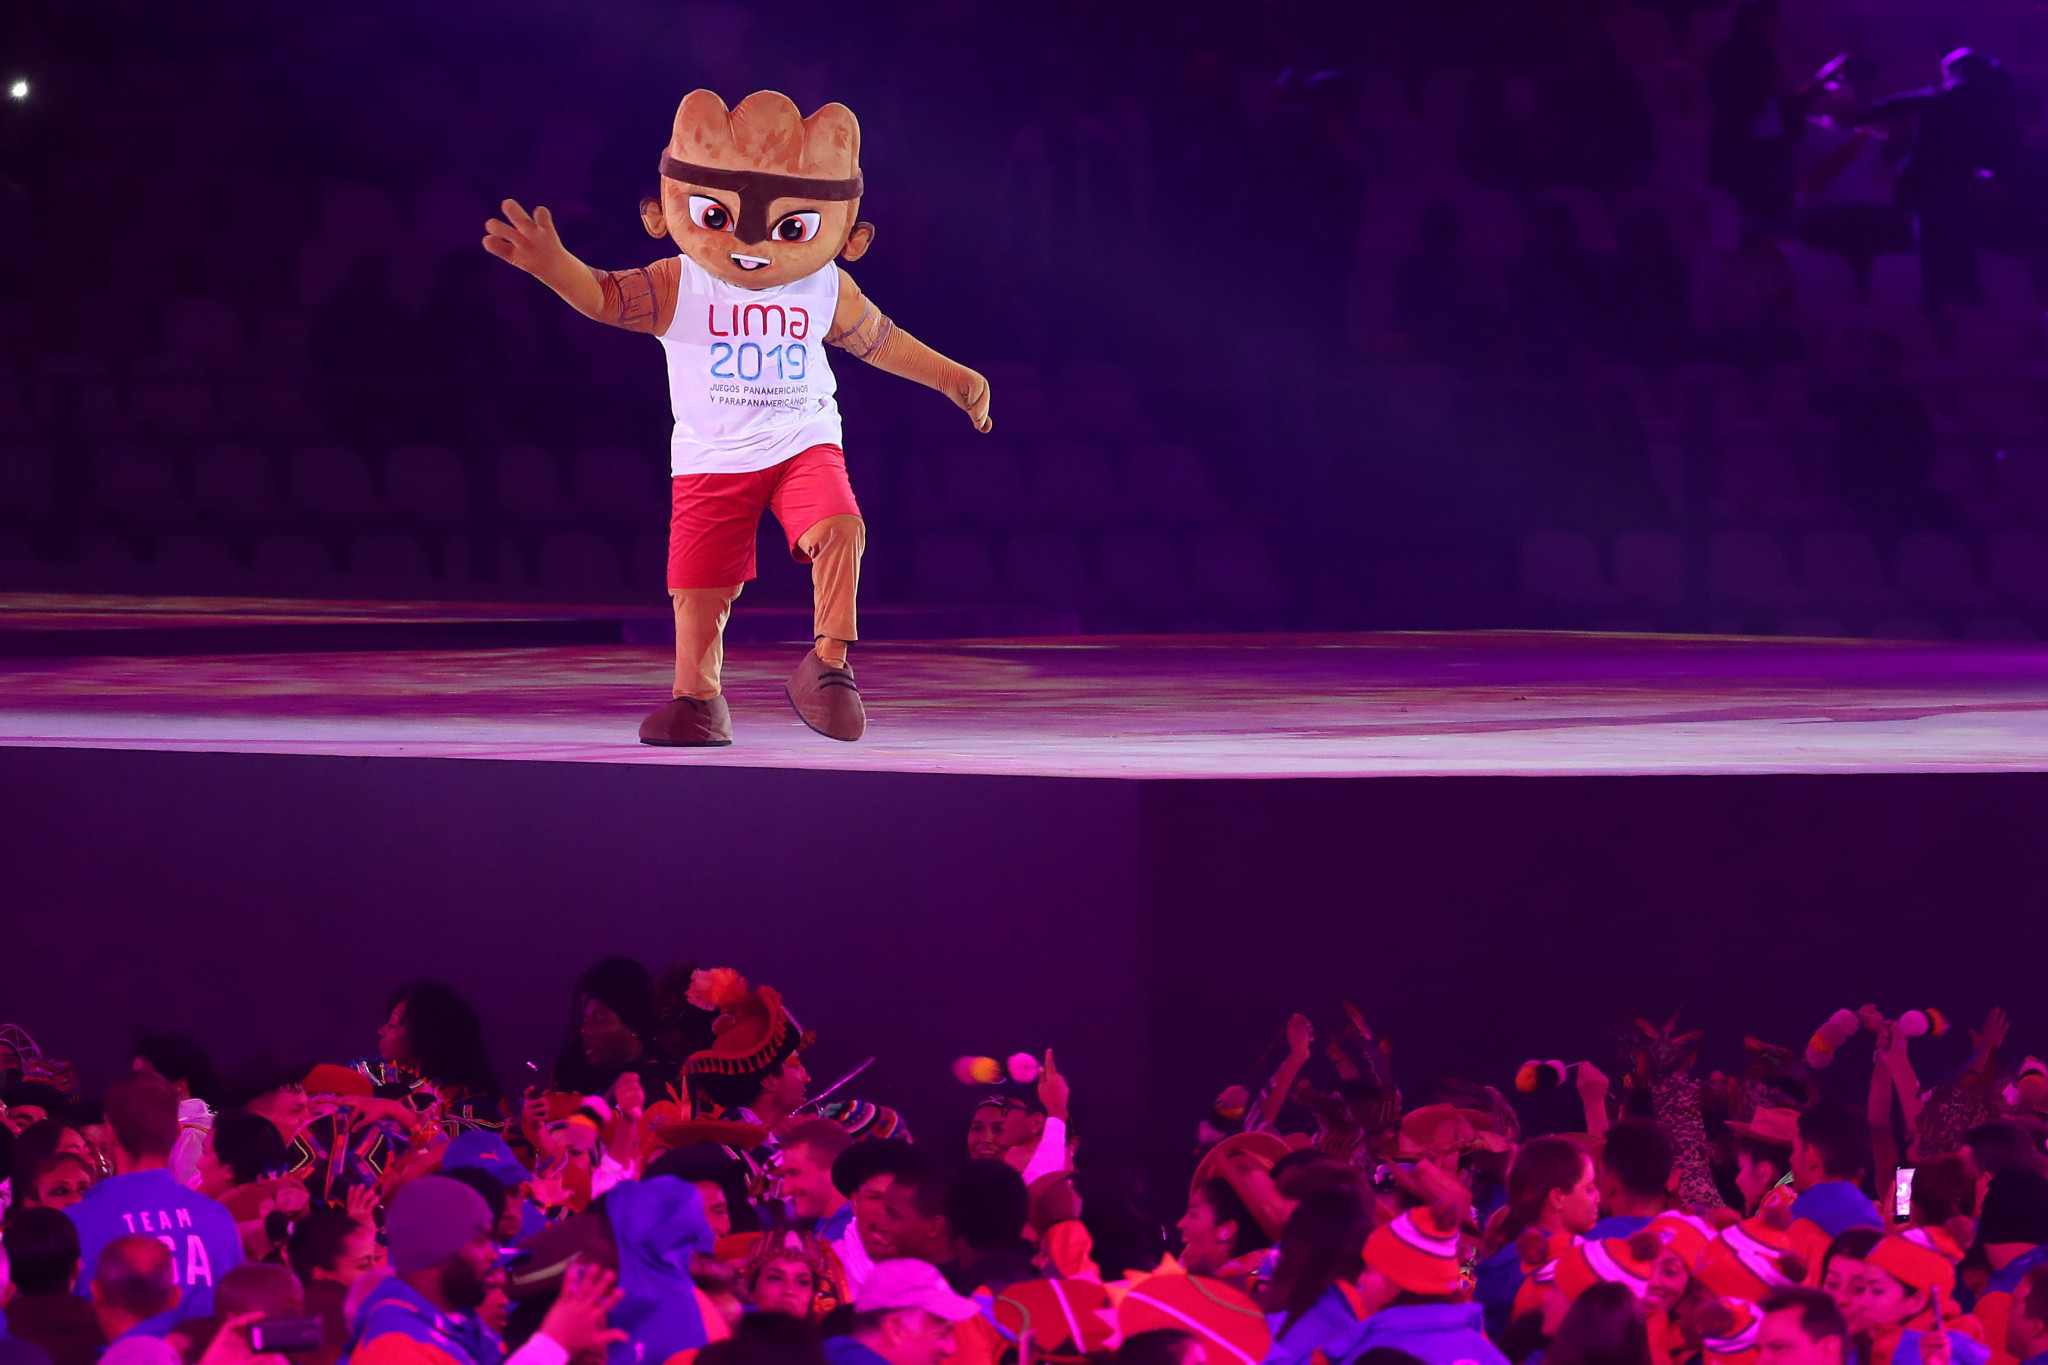 The Lima 2019 mascot, Milco, made his last appearance at the Games ©Getty Images